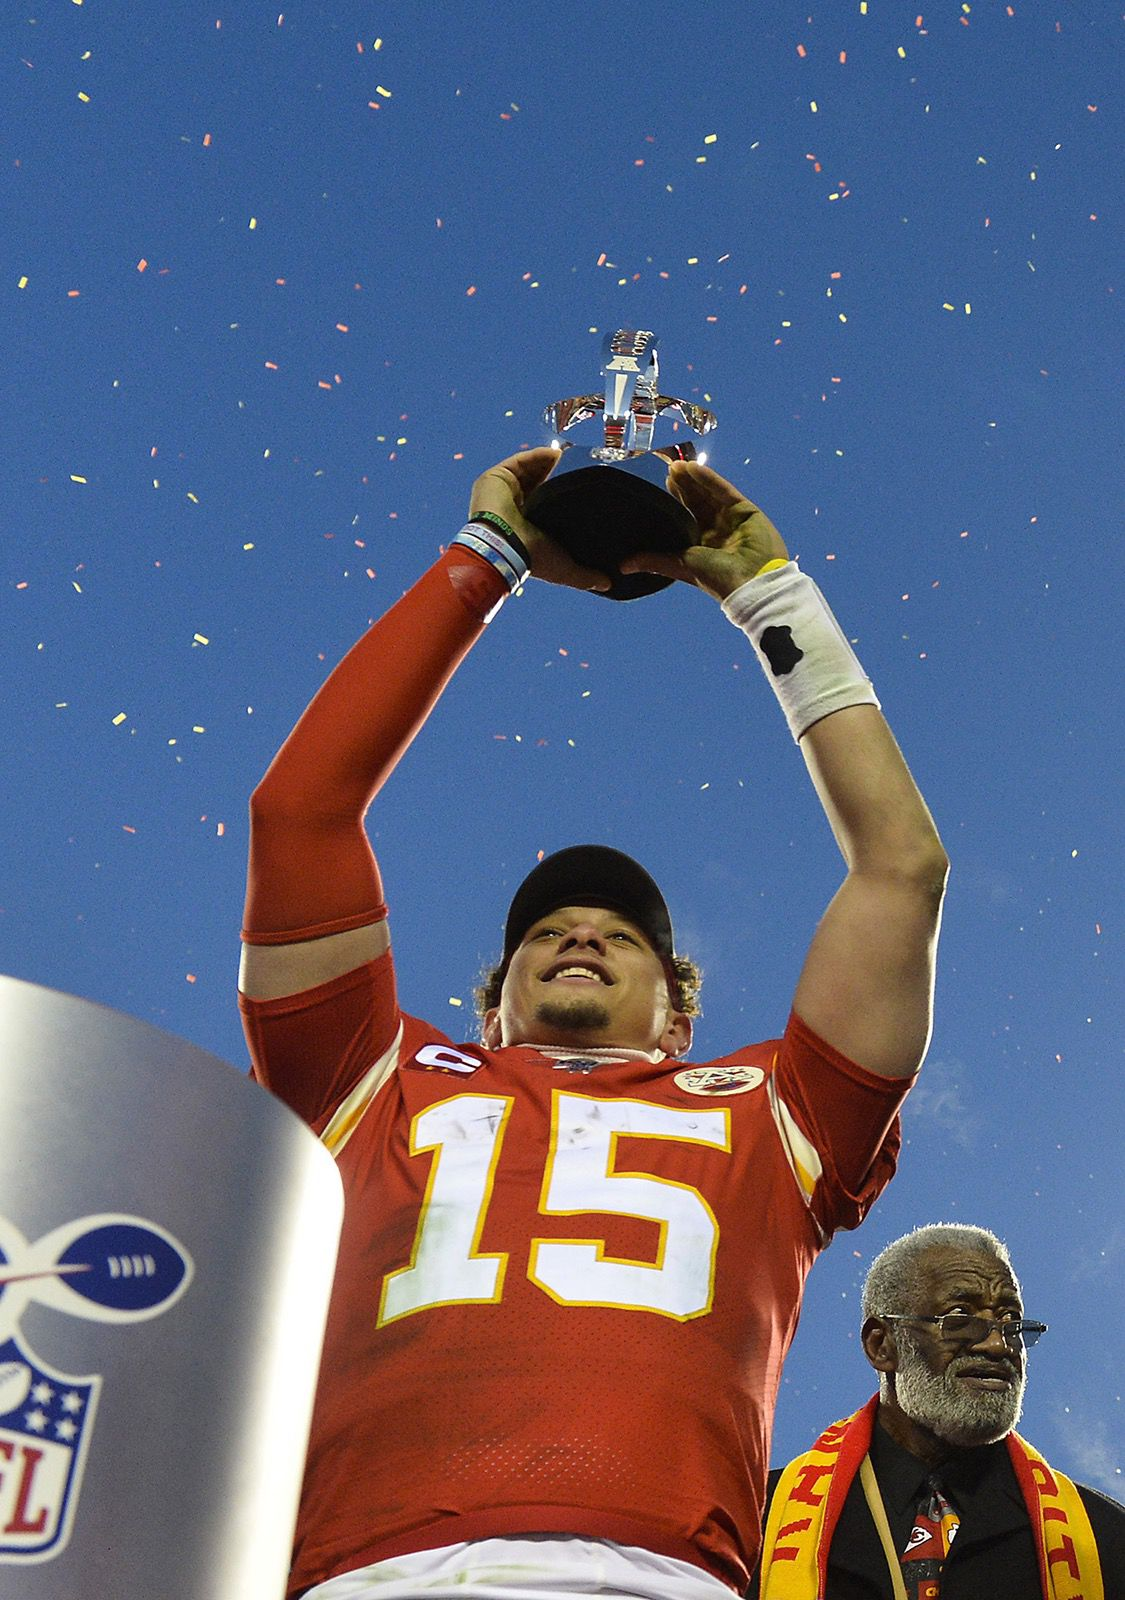 Kansas City Chiefs quarterback Patrick Mahomes hoists the Lamar Hunt AFC Championship trophy over his head after the Chiefs defeated the Tennessee Titans 35-24 to take the title and earn a trip to the Super Bowl after the AFC championship game on Sunday, Jan. 19, 2020, at Arrowhead Stadium in Kansas City, Mo.